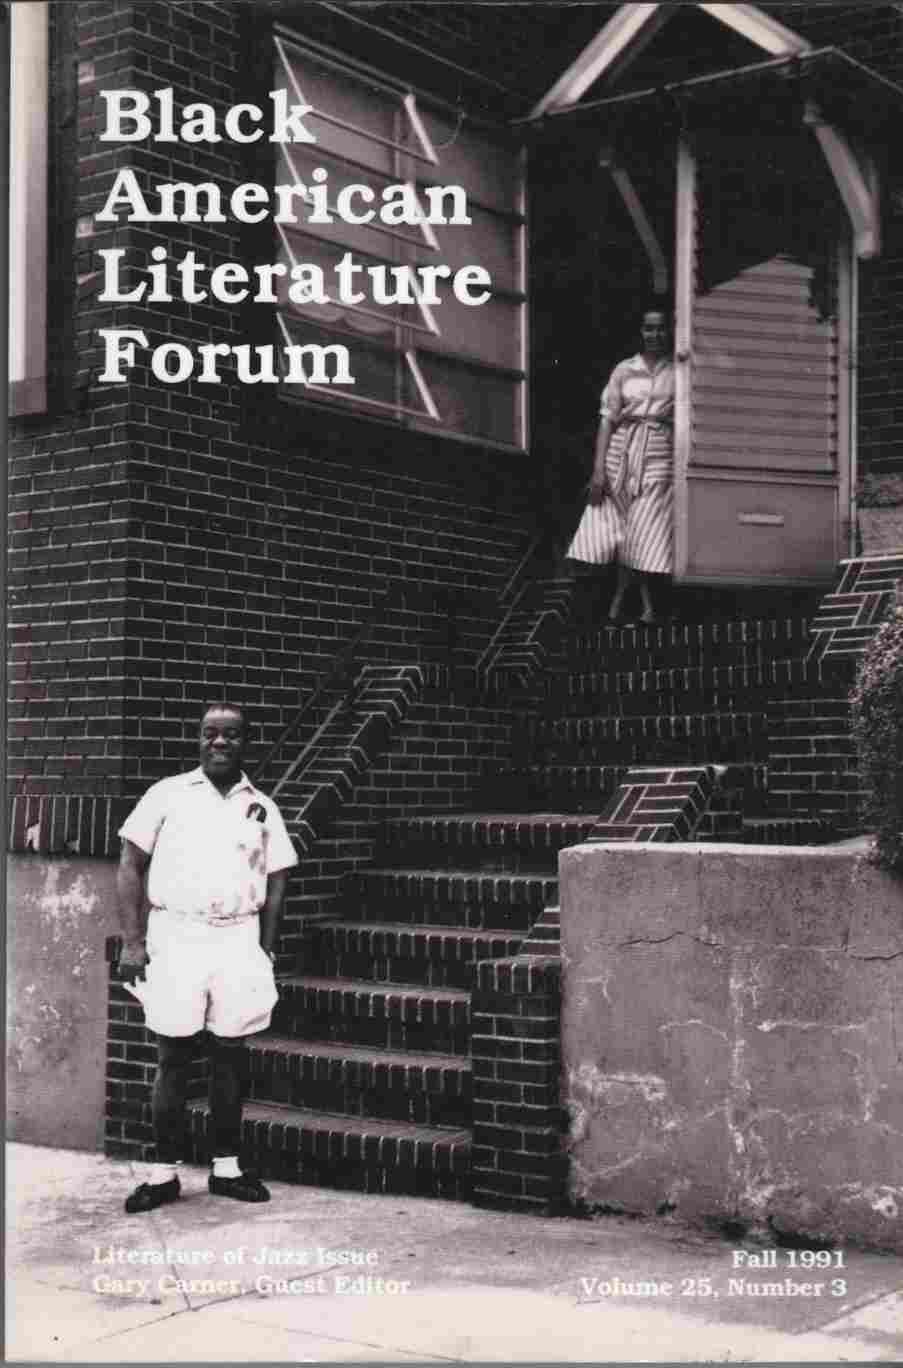 Image for Black American Literature Forum, Volume 25, Number 3:  Literature of Jazz Issue